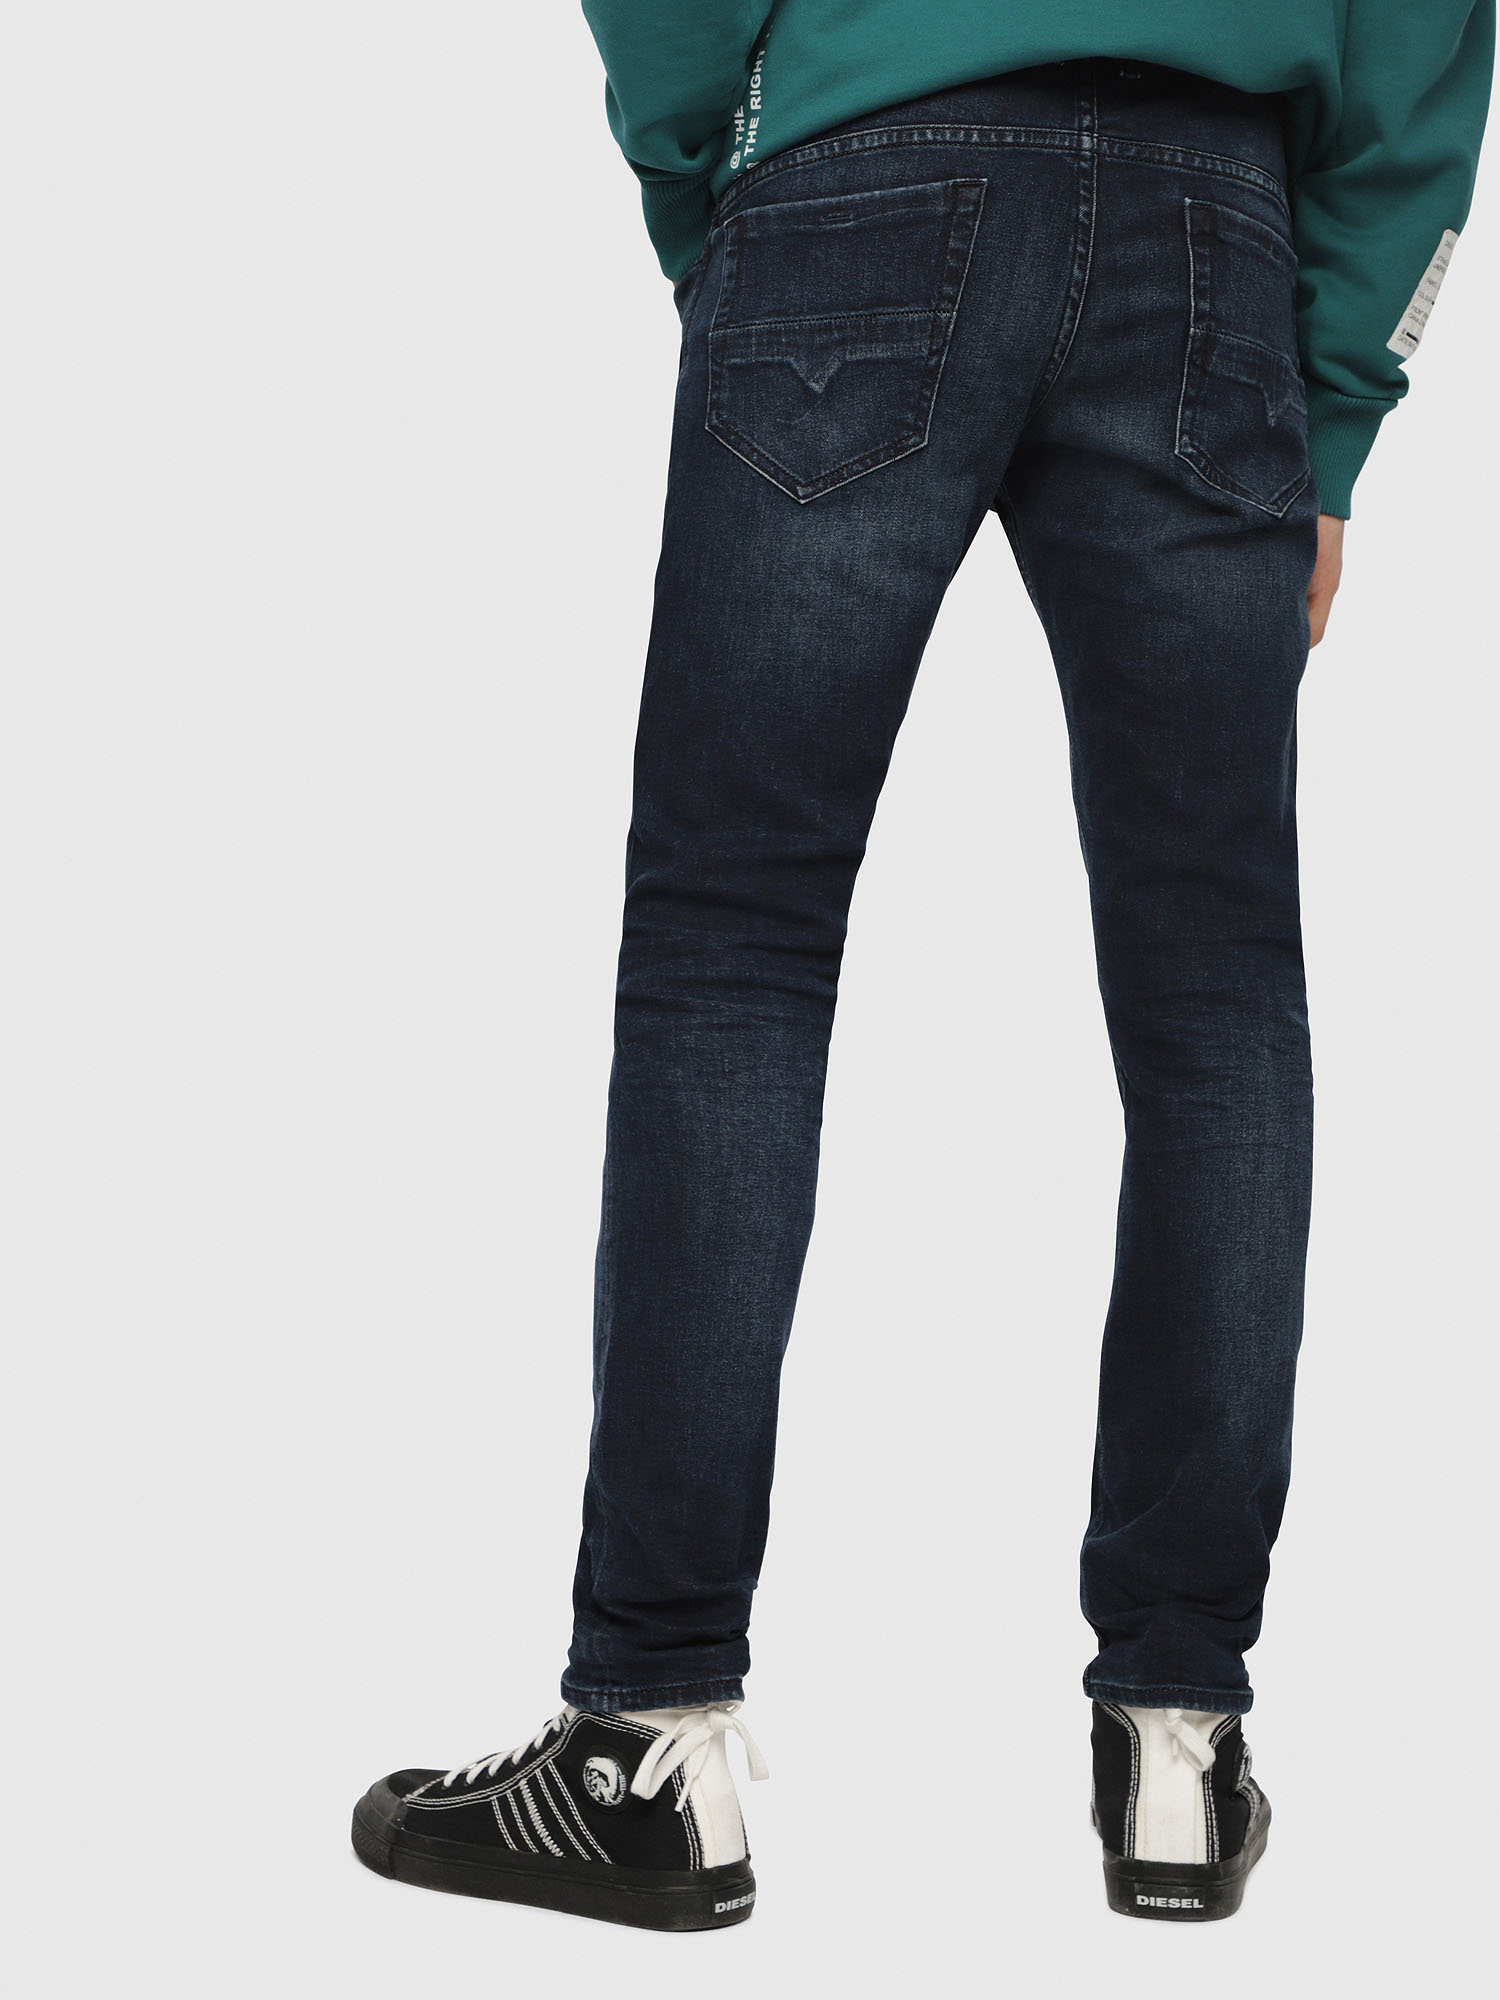 Diesel - Thommer 087AS,  - Jeans - Image 2